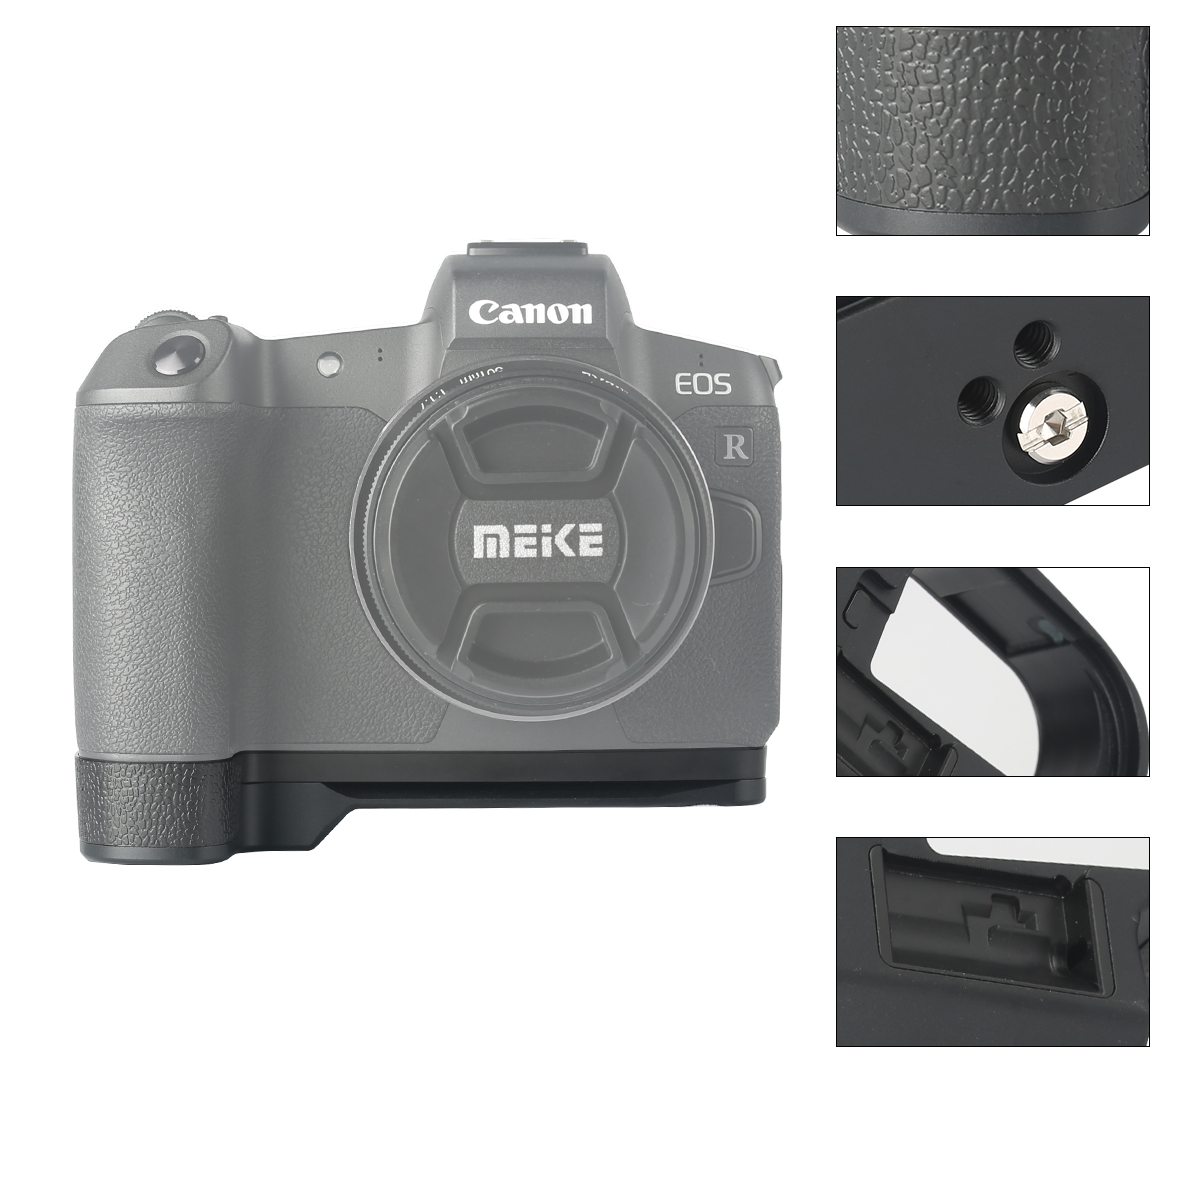 Venidice Cloth Aluminum Alloy Handle Holder Bracket Base with Quick Release Plate for Canon EOS-R Meike MK-EOSRG Metal Hand Grip